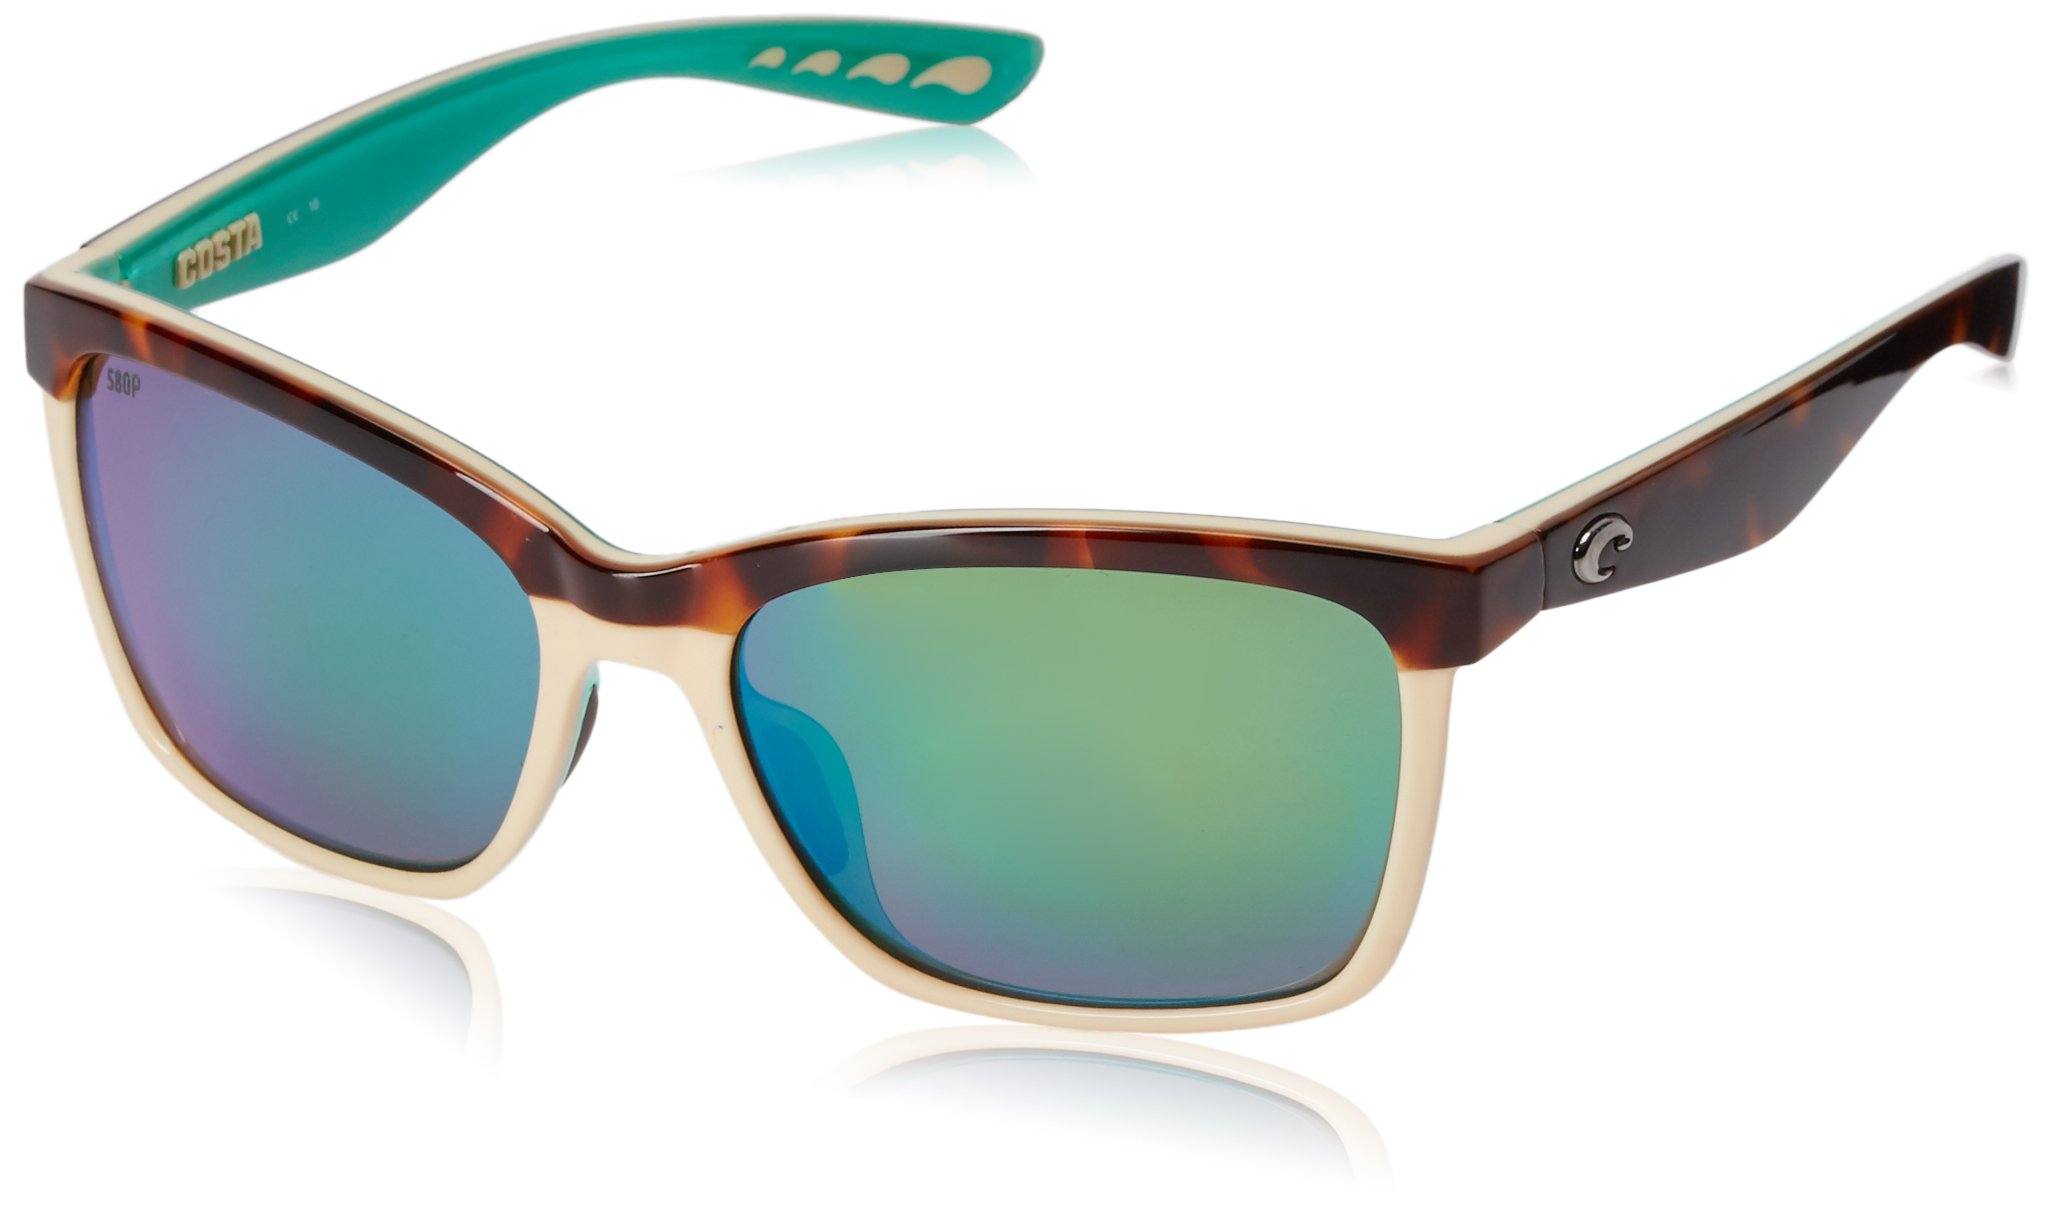 Costa Del Mar Anaa Sunglasses Retro Tort/Cream/Mint/Green Mirror 580Plastic by Costa Del Mar